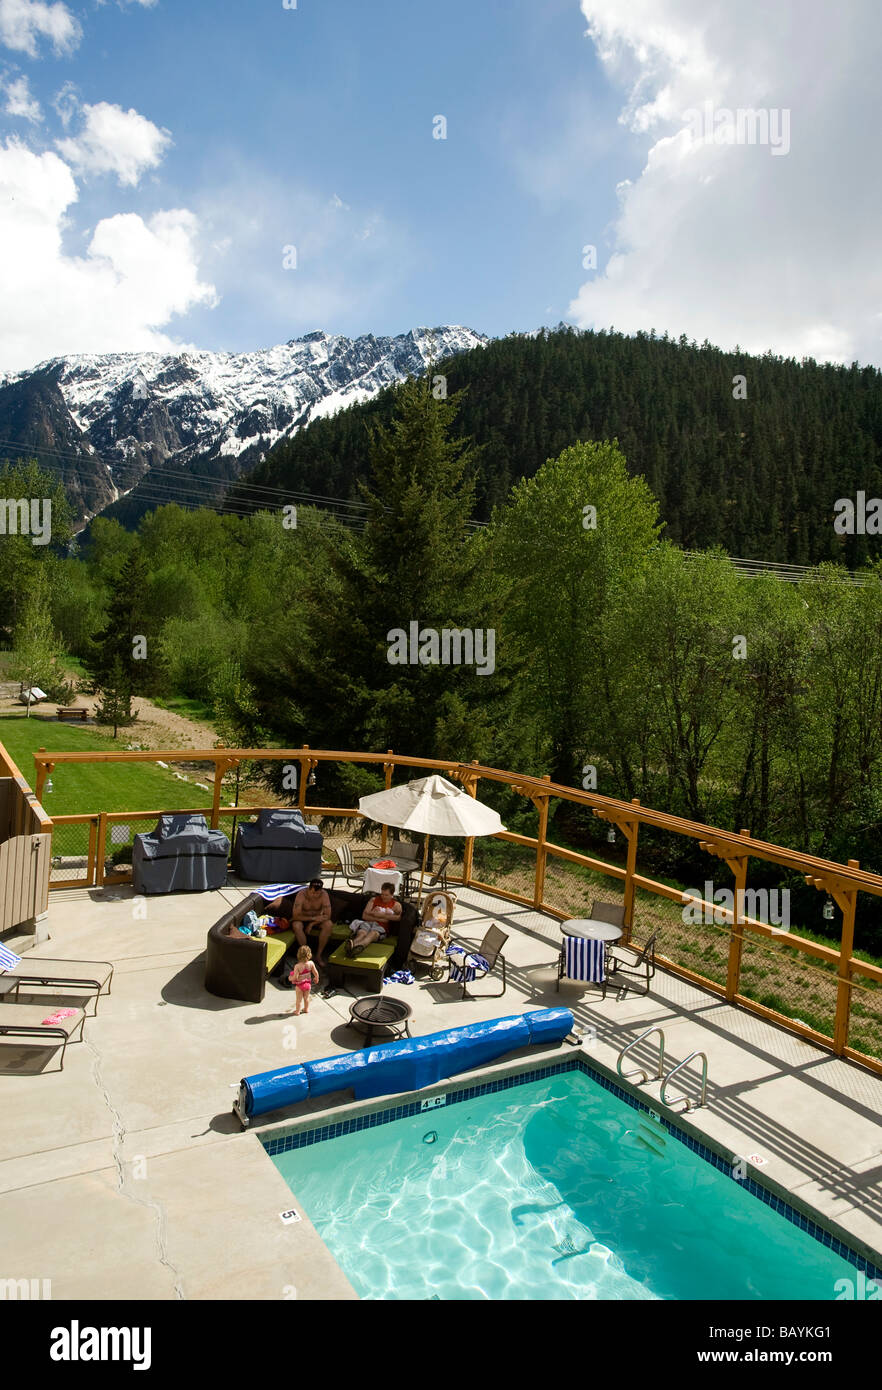 Hotel guests enjoy the sun pool side with Mt Currie in the background Pemberton BC Canada - Stock Image